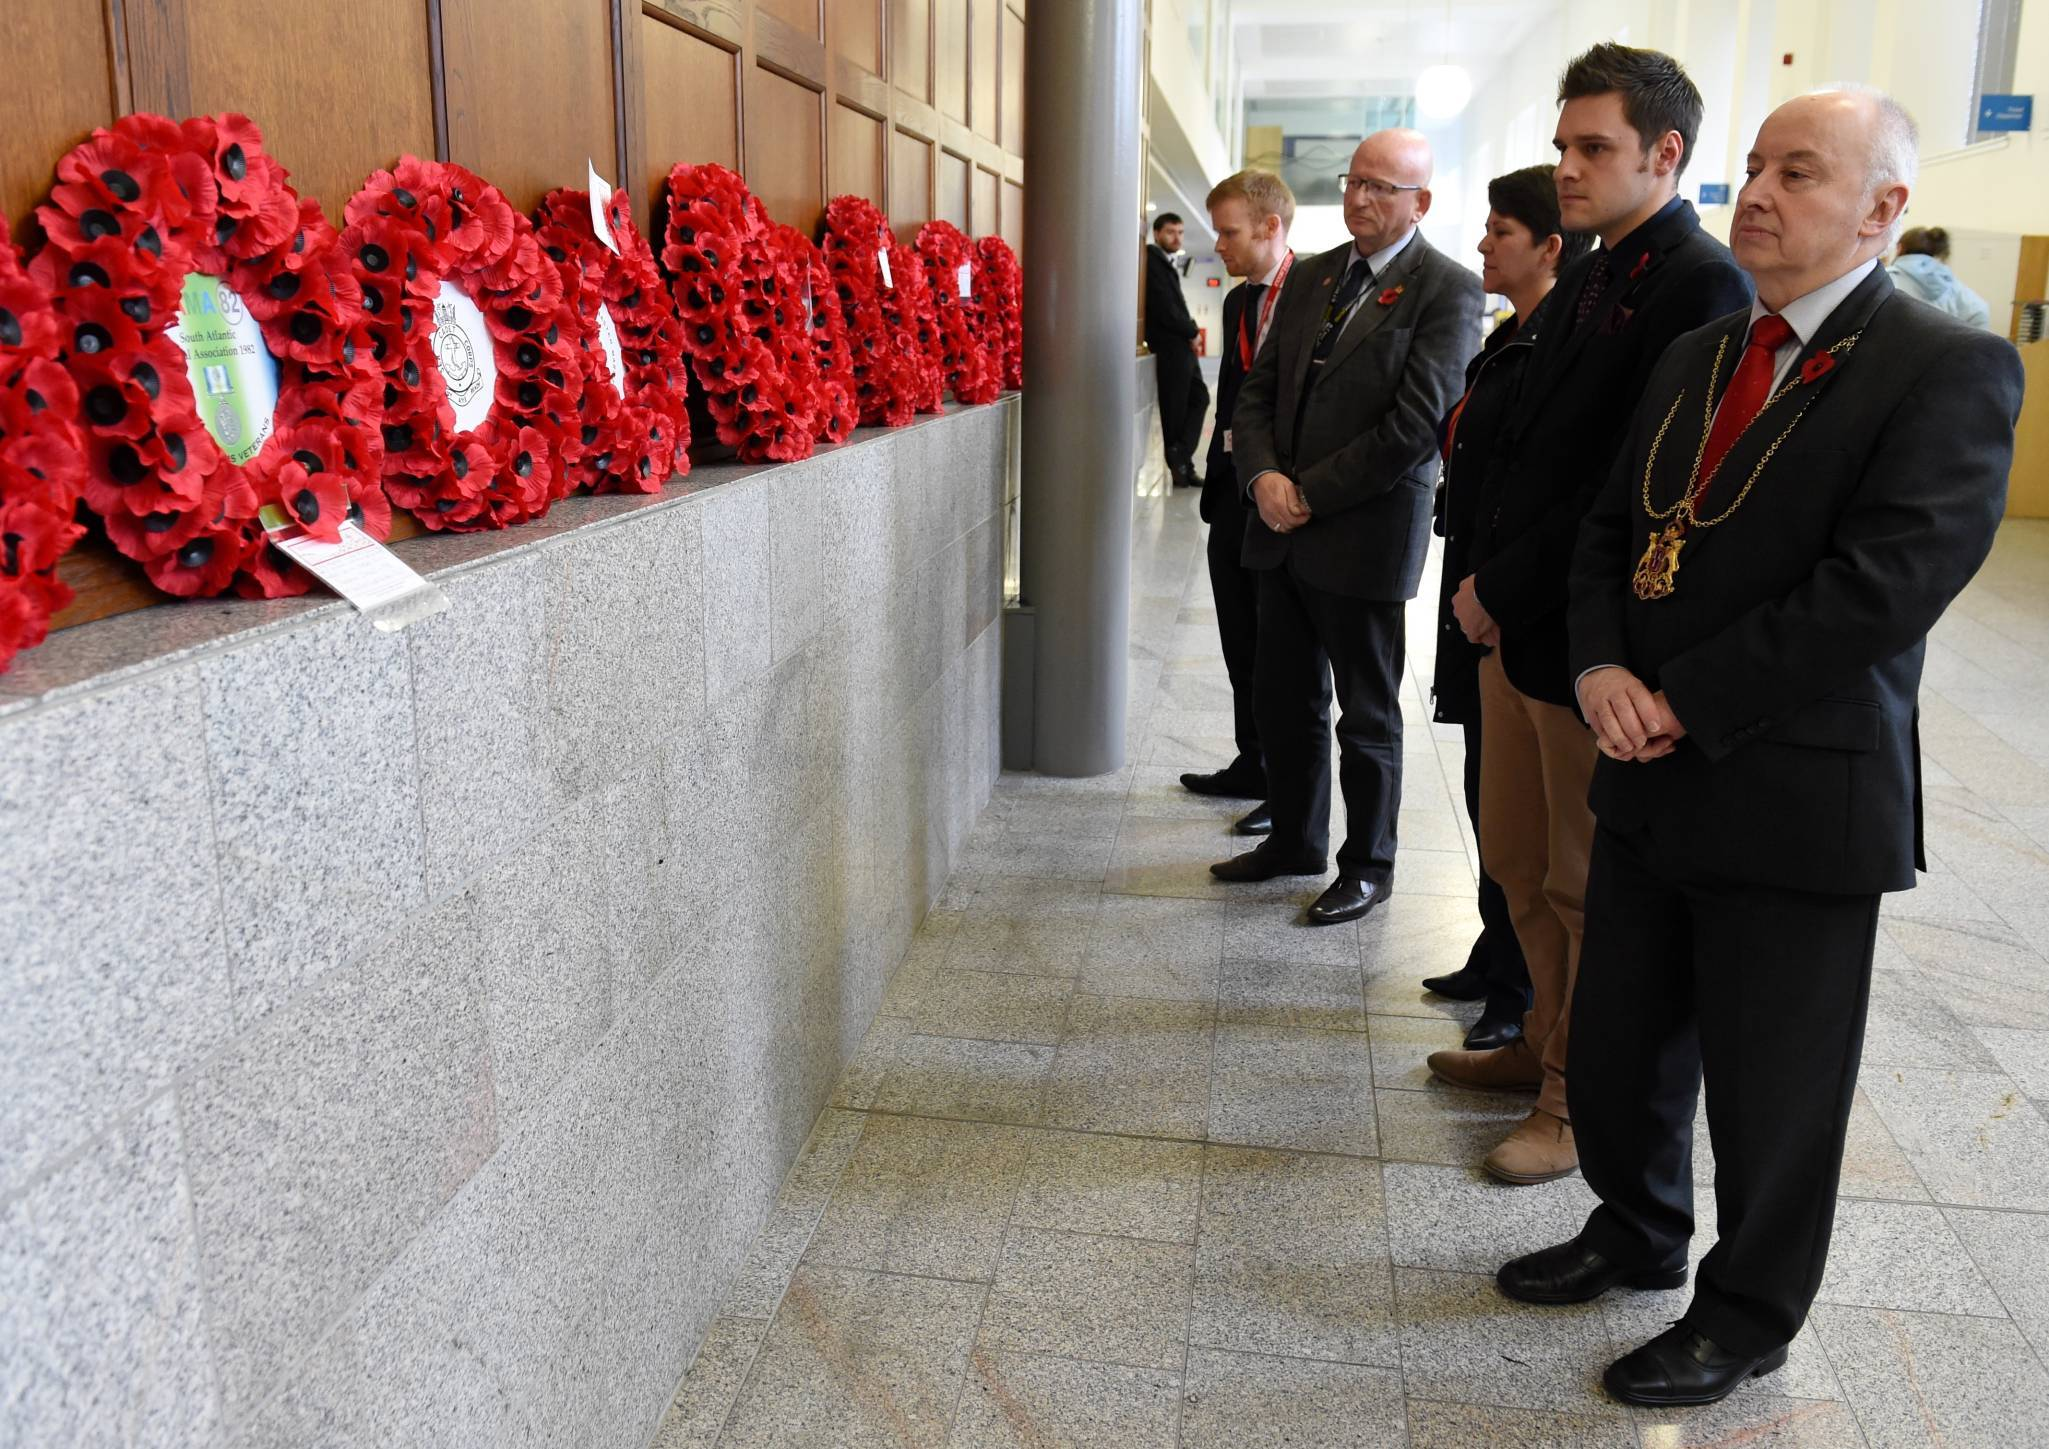 Aberdeen Lord Provost George Adam and council staff mark Armistice Day